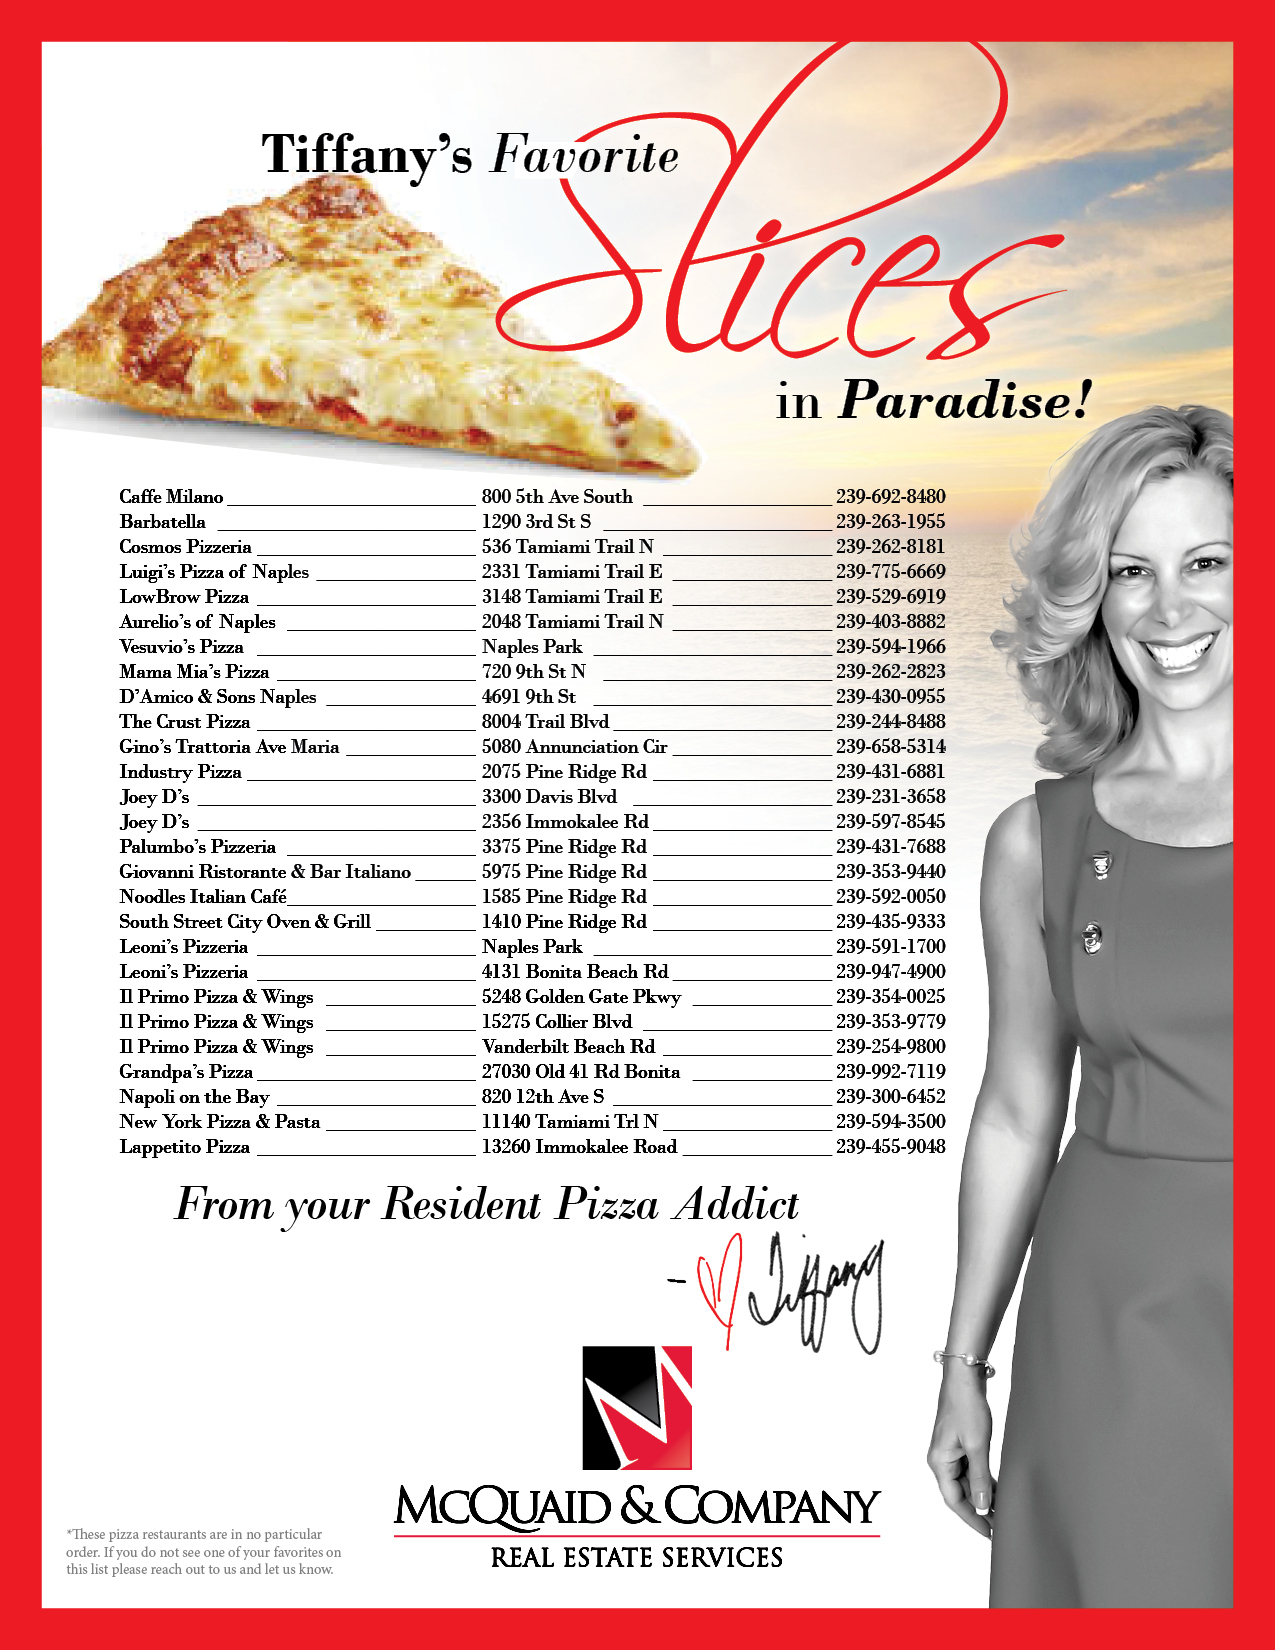 Tiffany's Favorite Slices in Paradise!